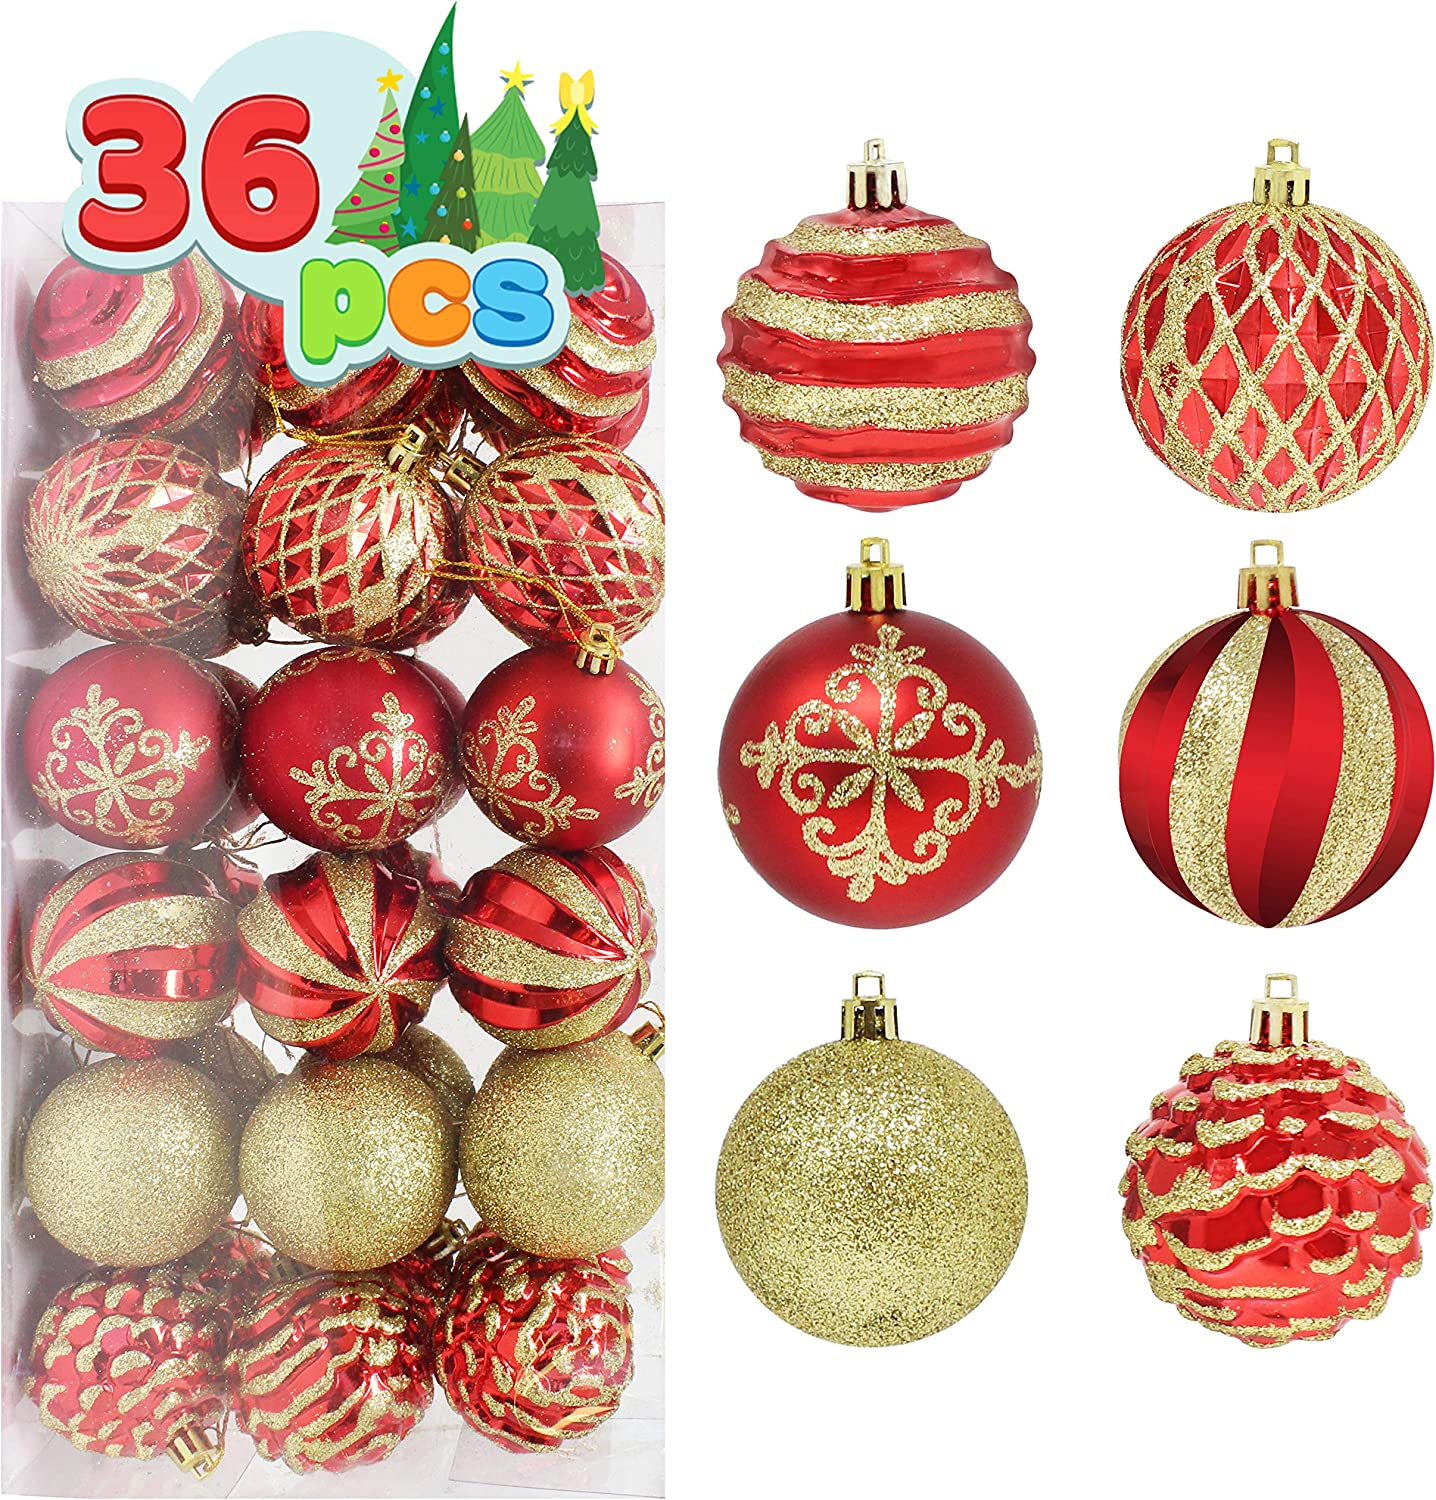 "Joiedomi 36 Pcs Christmas Ball Ornaments, Deluxe Shatterproof Christmas Ornaments for Holidays, Party Decoration, Tree Ornaments, and Special Events (Red&Gold, 2.36"")"